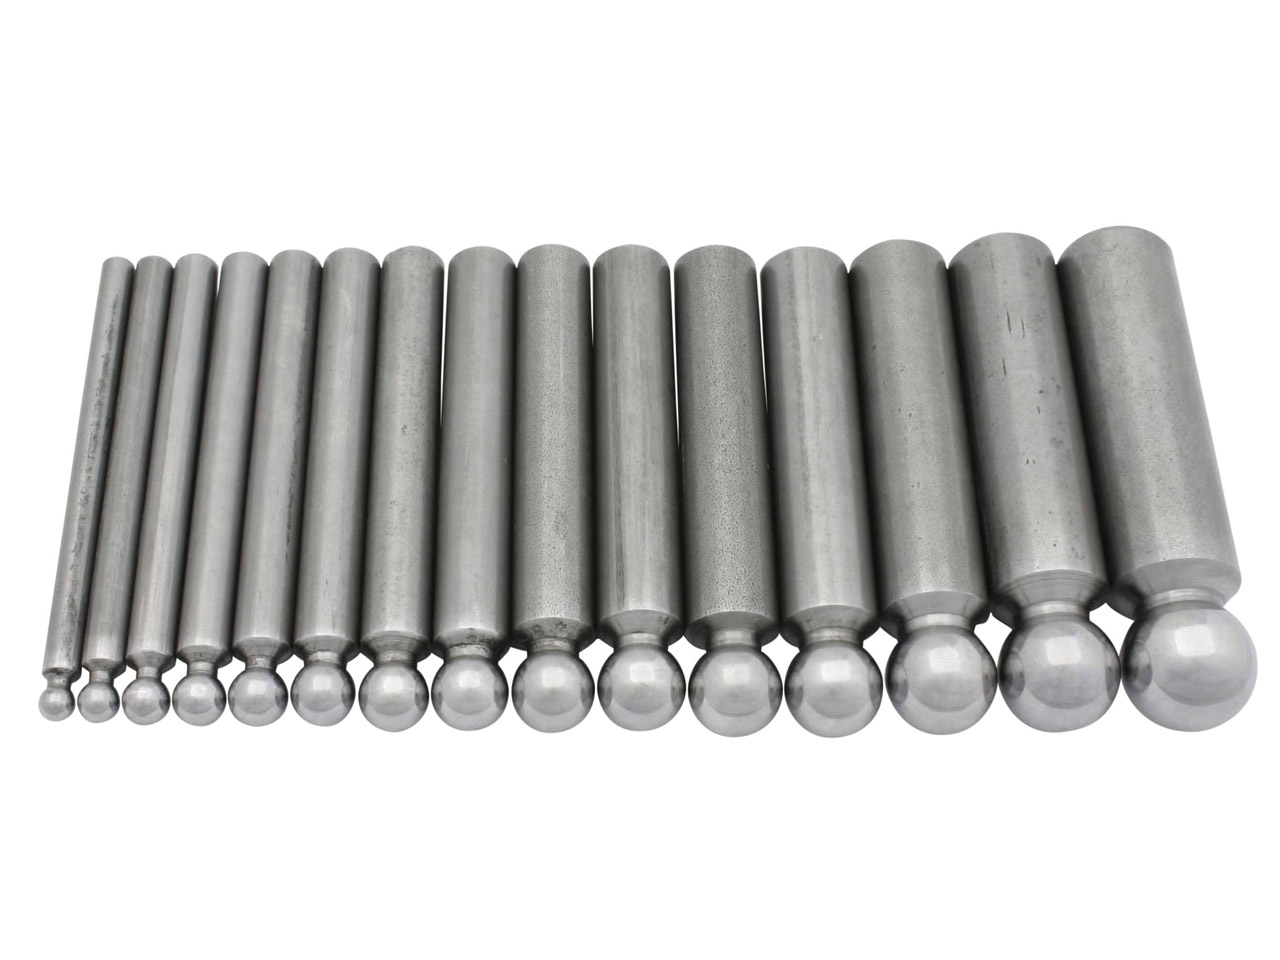 Set Of 15 Steel Doming Punches,    Hole Width 5.0 To 19.0mm